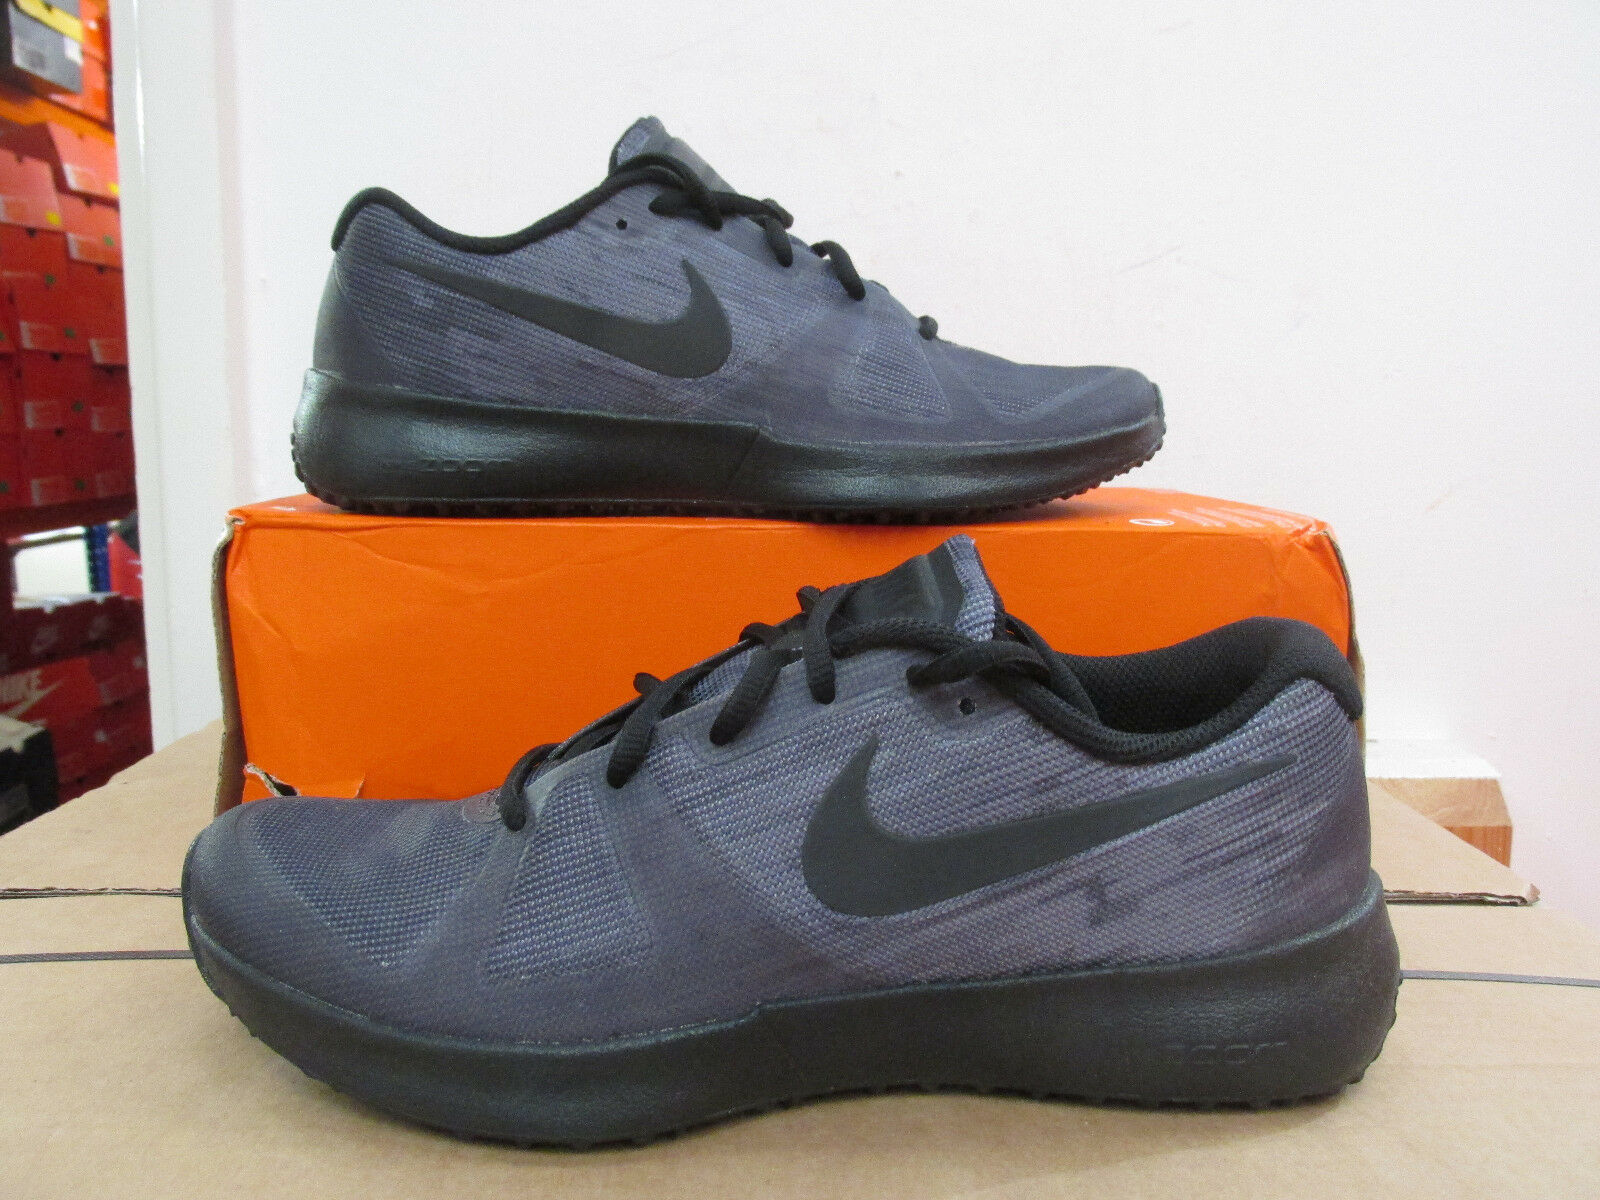 Seasonal clearance sale nike zoom speed TR mens running trainers 630855 001 sneakers shoes CLEARANCE